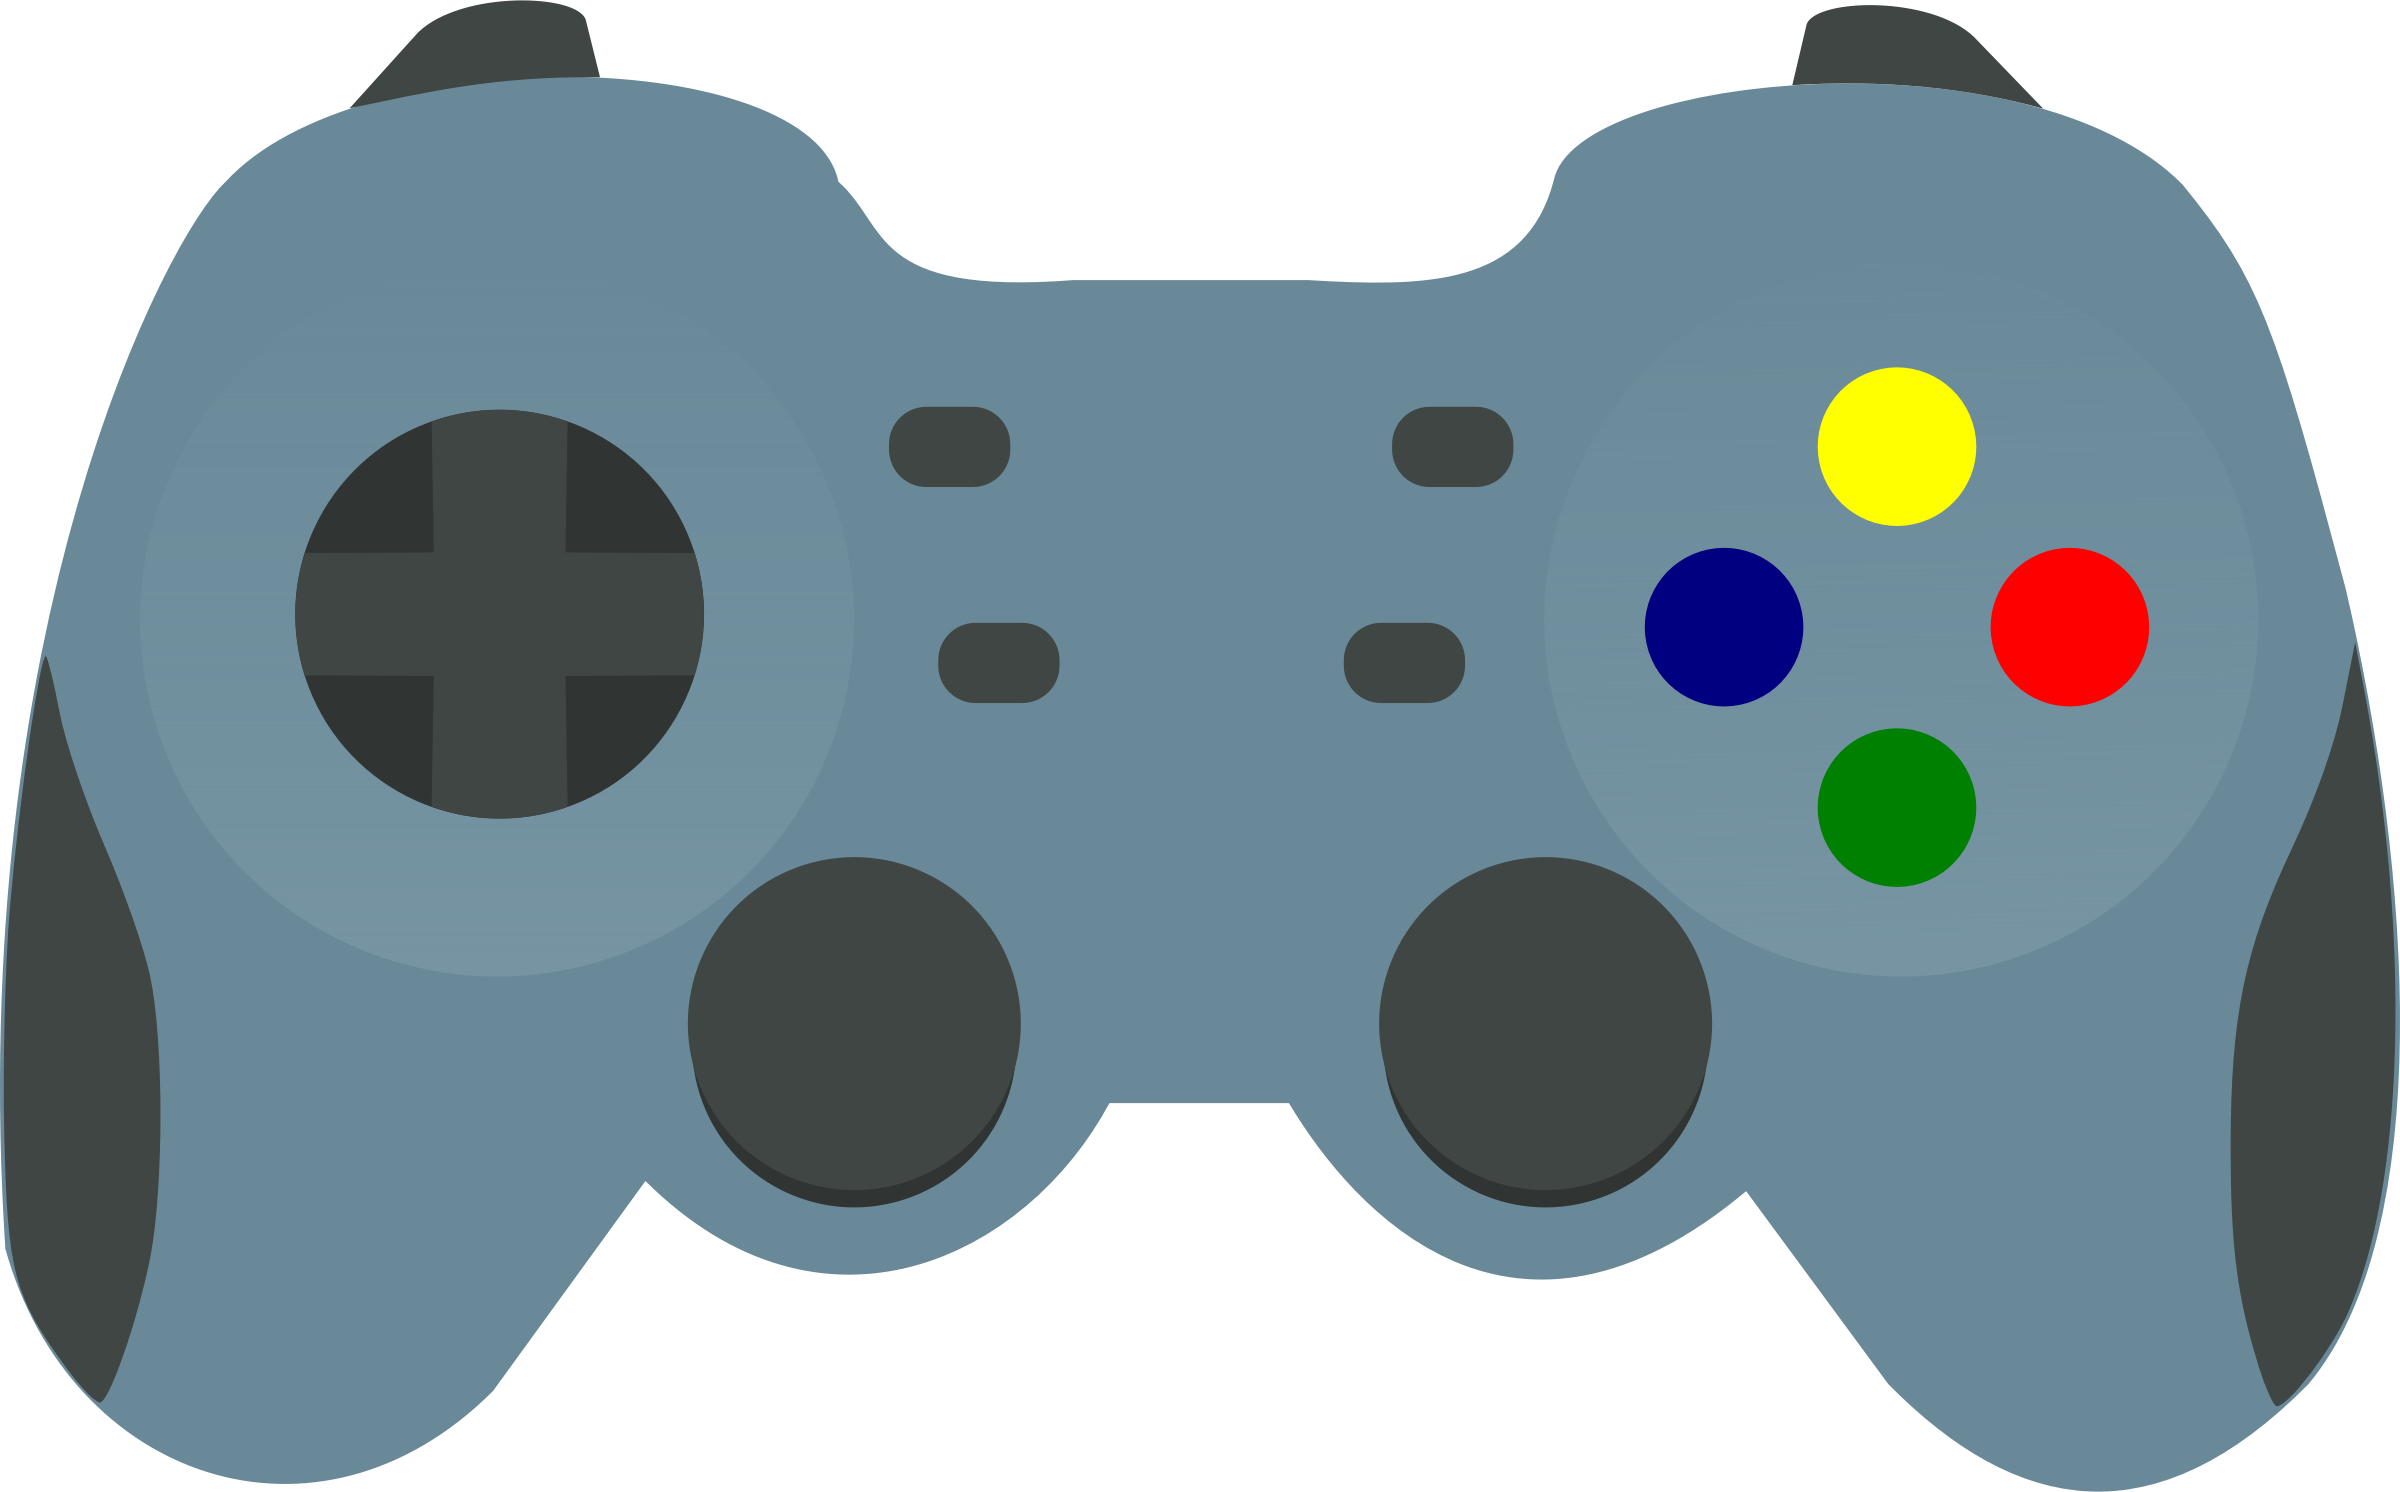 Gamepad by carlosmtnz